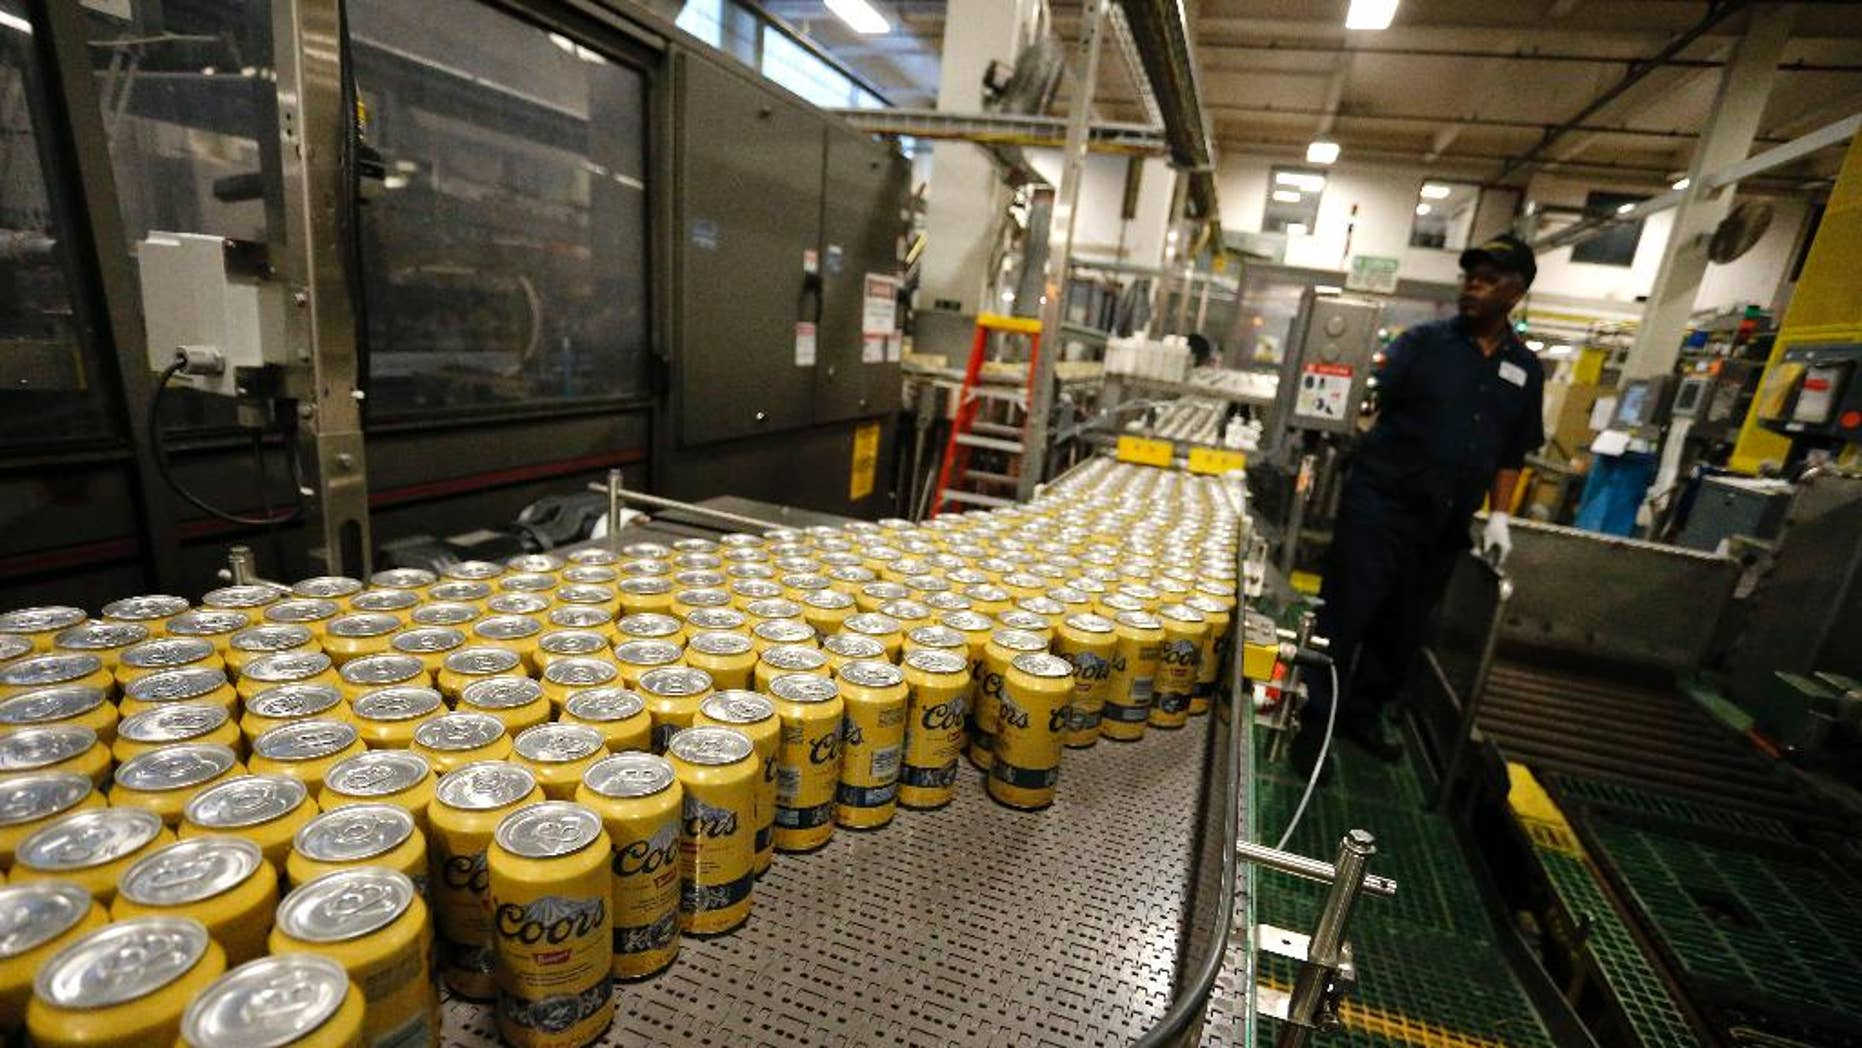 In this March 11, 2015 photo, newly-filled and sealed cans of Coors Banquet beer move along on a conveyor belt at the MillerCoors Brewery, in Golden, Colo. The Labor Department releases the Producer Price Index for March on Tuesday, April 14, 2015. (AP Photo/Brennan Linsley)